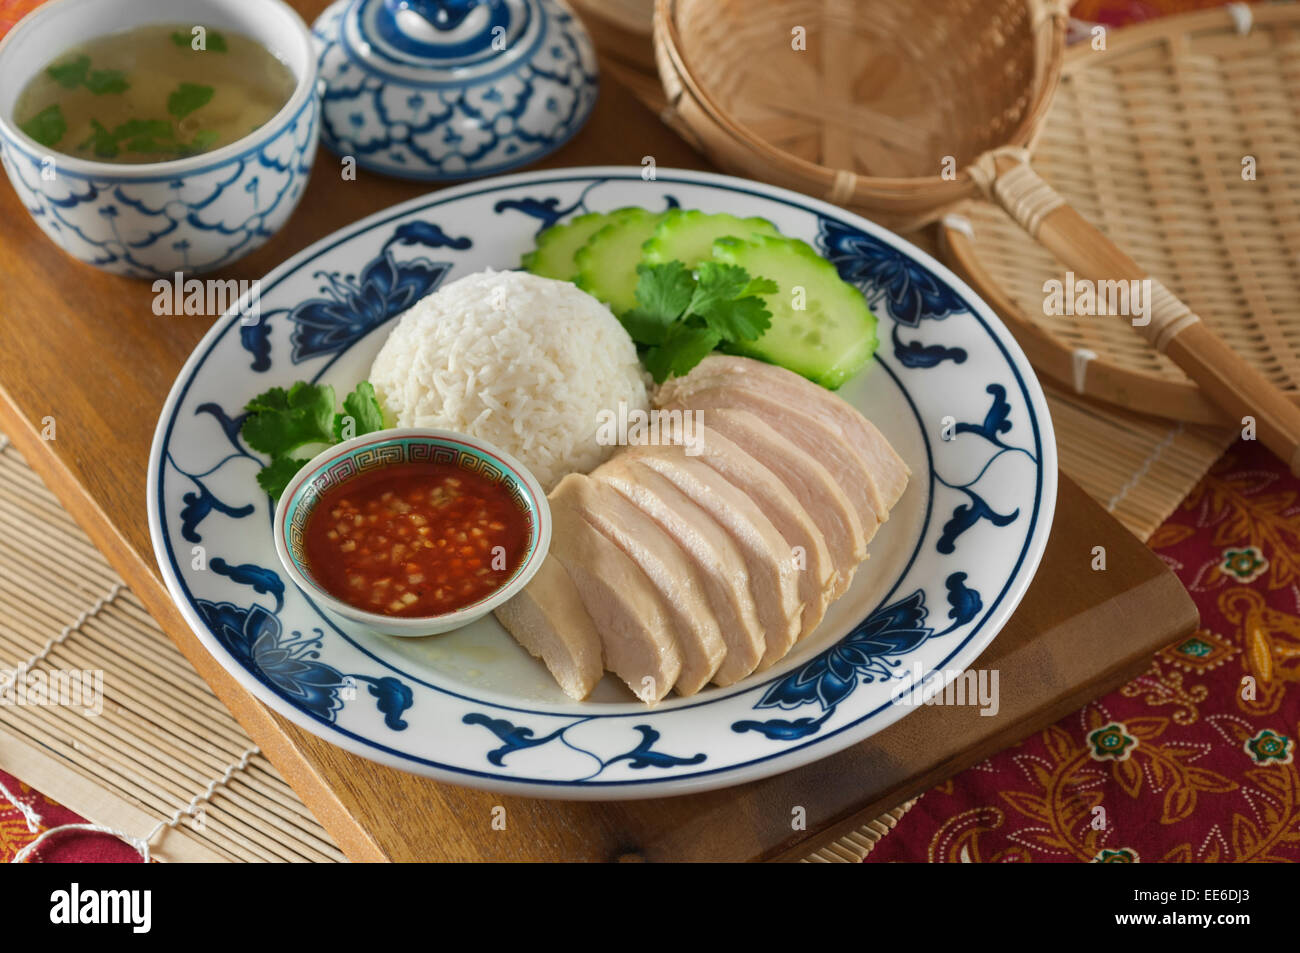 Khao man gai. Riz au poulet de la Thaïlande Photo Stock